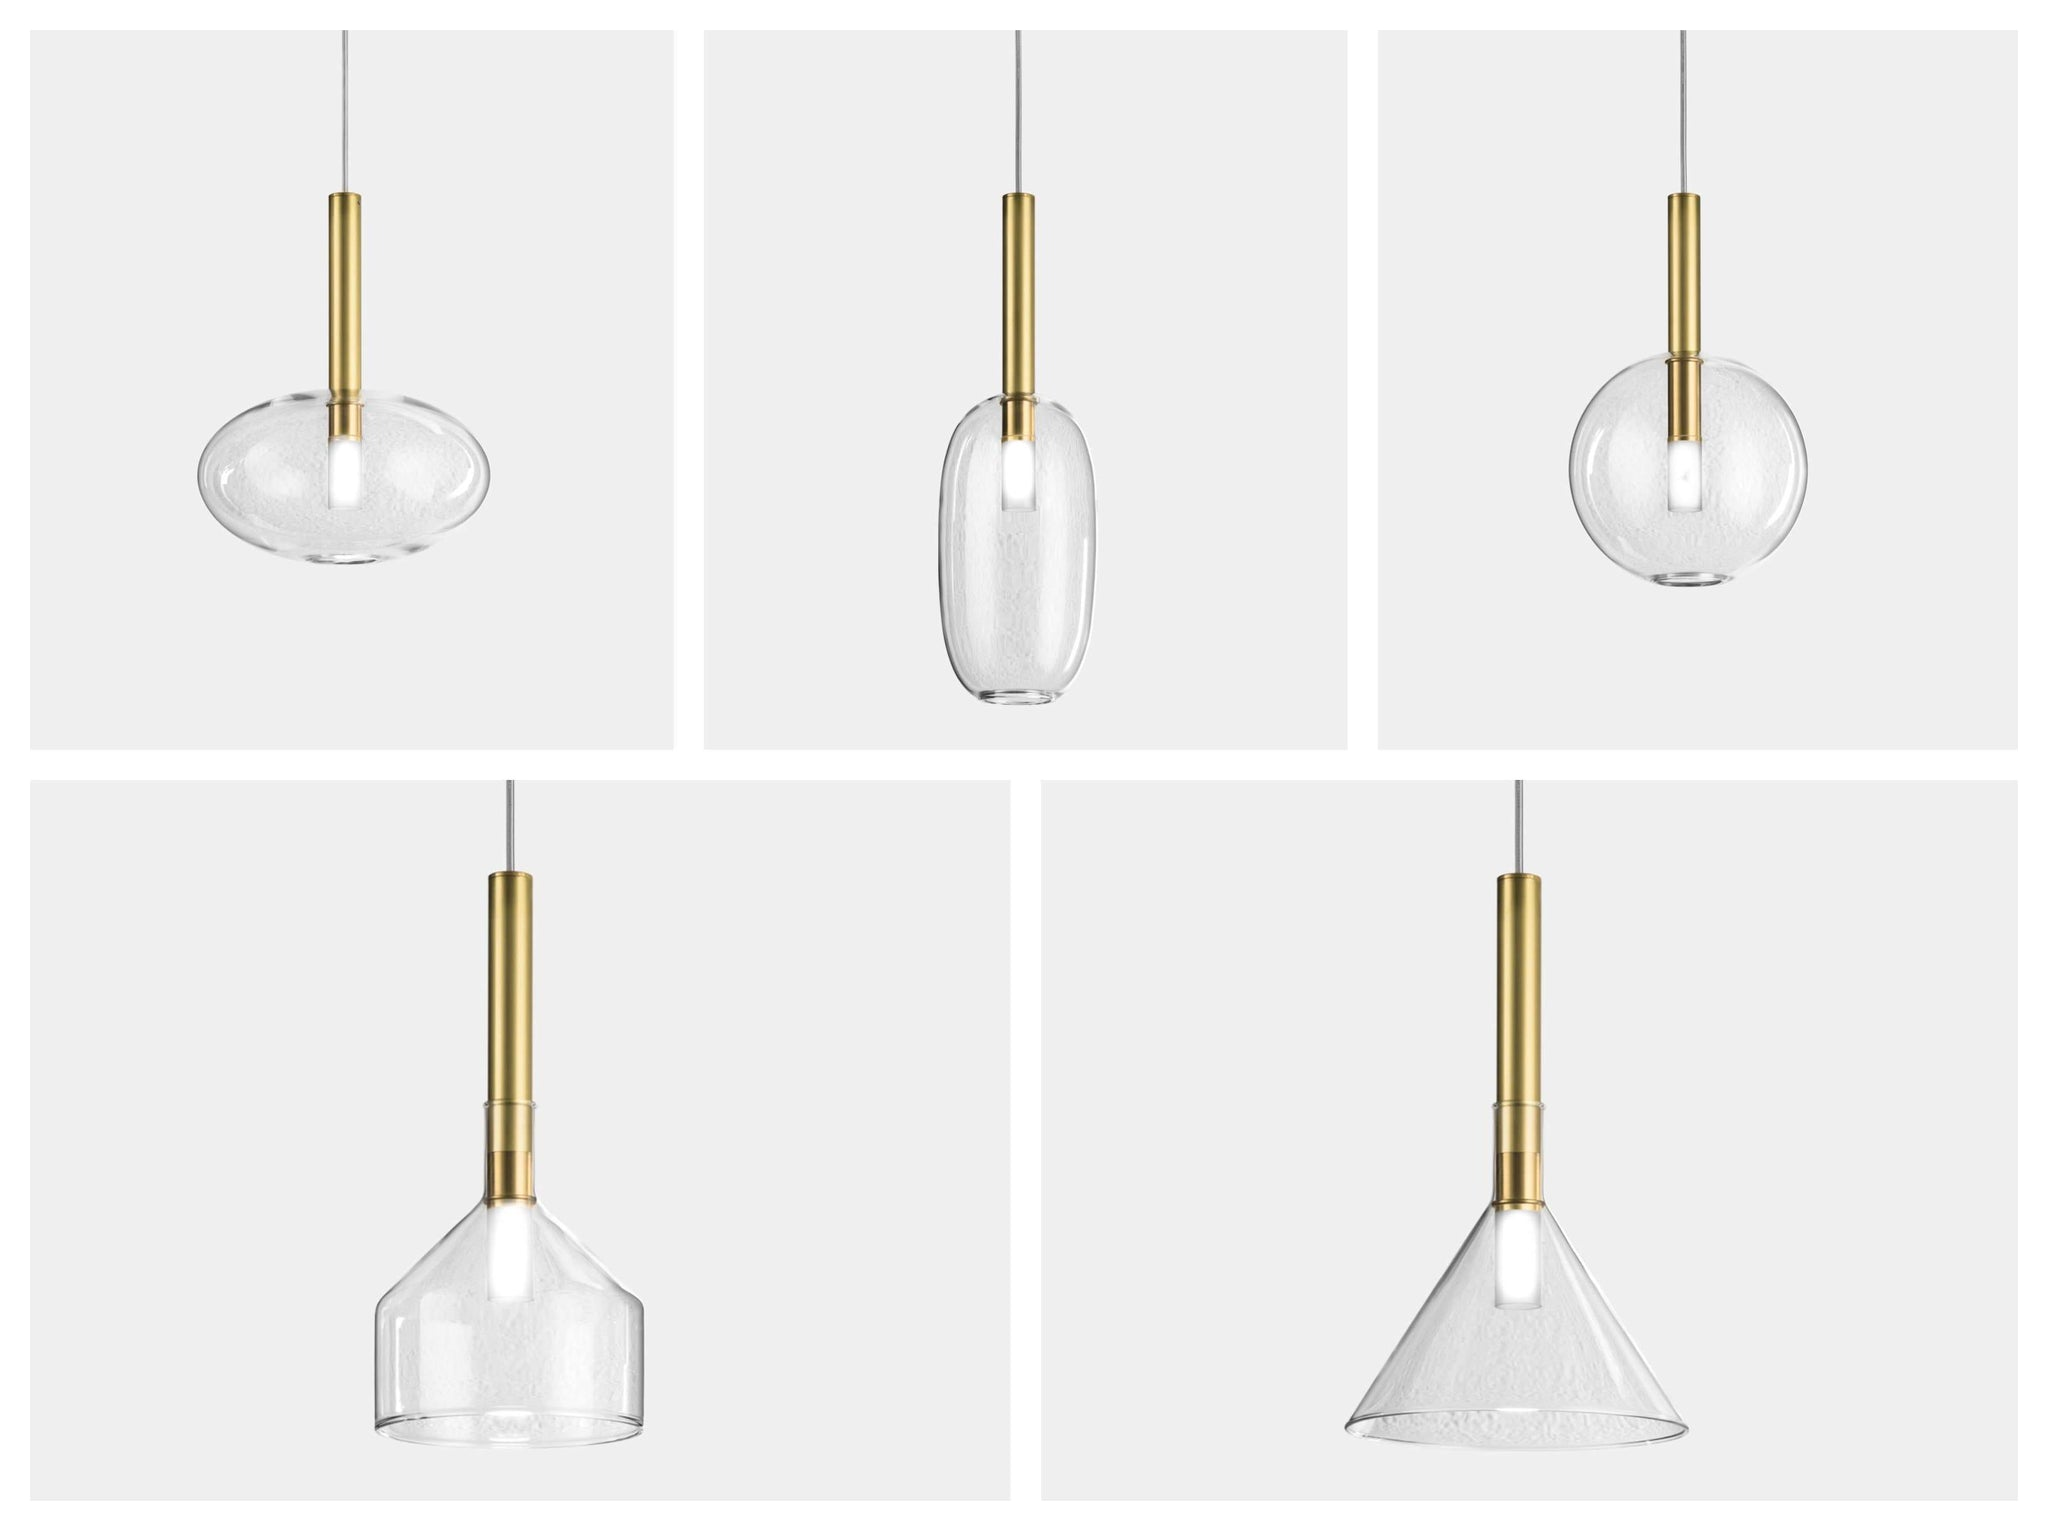 Interior Pendant Alchimia Pendant Lighting Stores